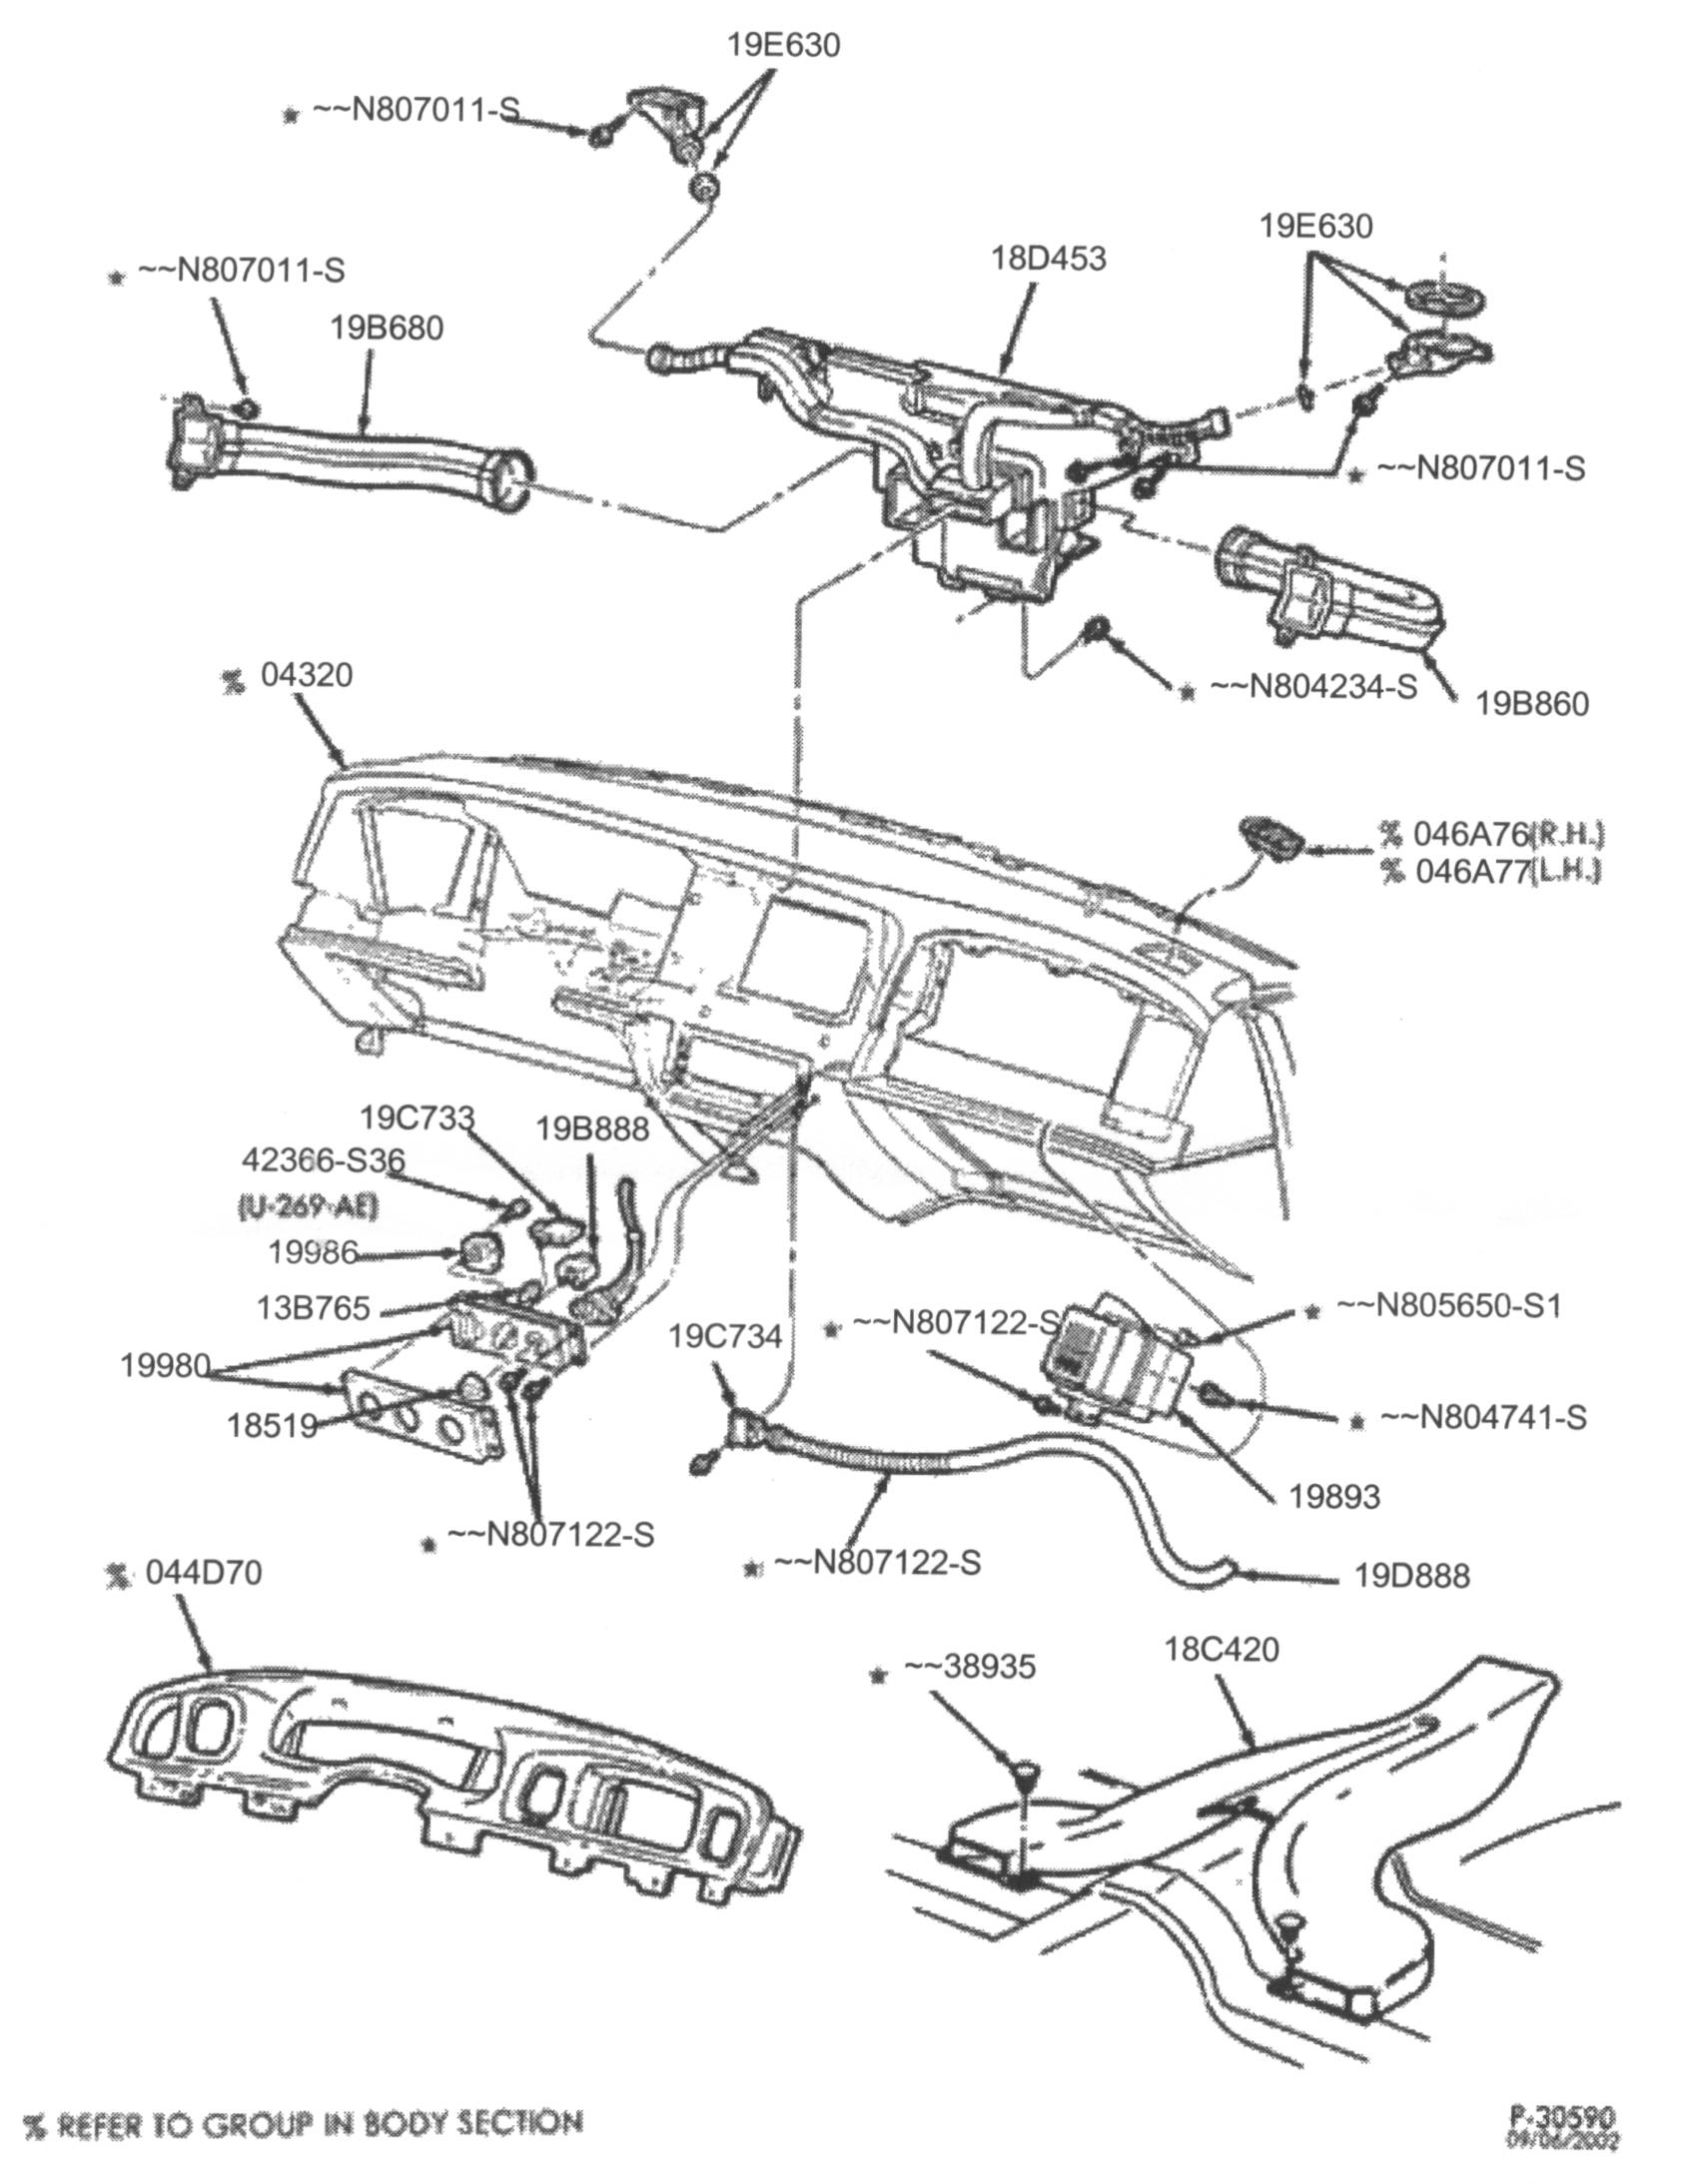 Ford Crown Victoria Stereo Radio Installation Tidbits Pioneer Double Din Wiring Diagram Some Vic Owners Prefer To Keep The Factory Look Their Install A Few Have Swapped In Radios From Other Vehicles Such As Explorers